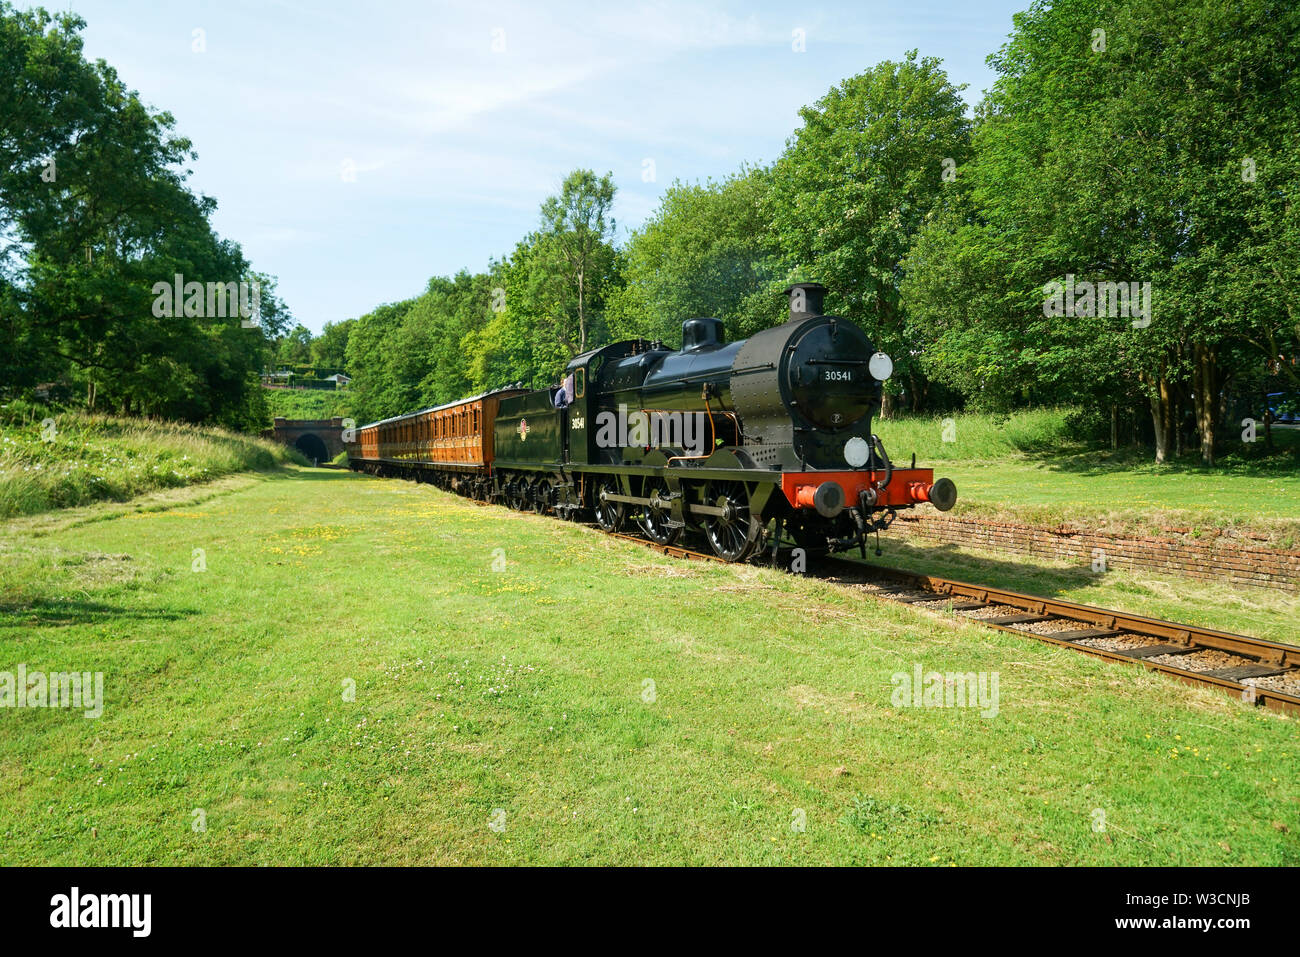 Bluebell Railway Q Class Locomotive & Vintage Carriages at Site of West Hothly Station - Stock Image